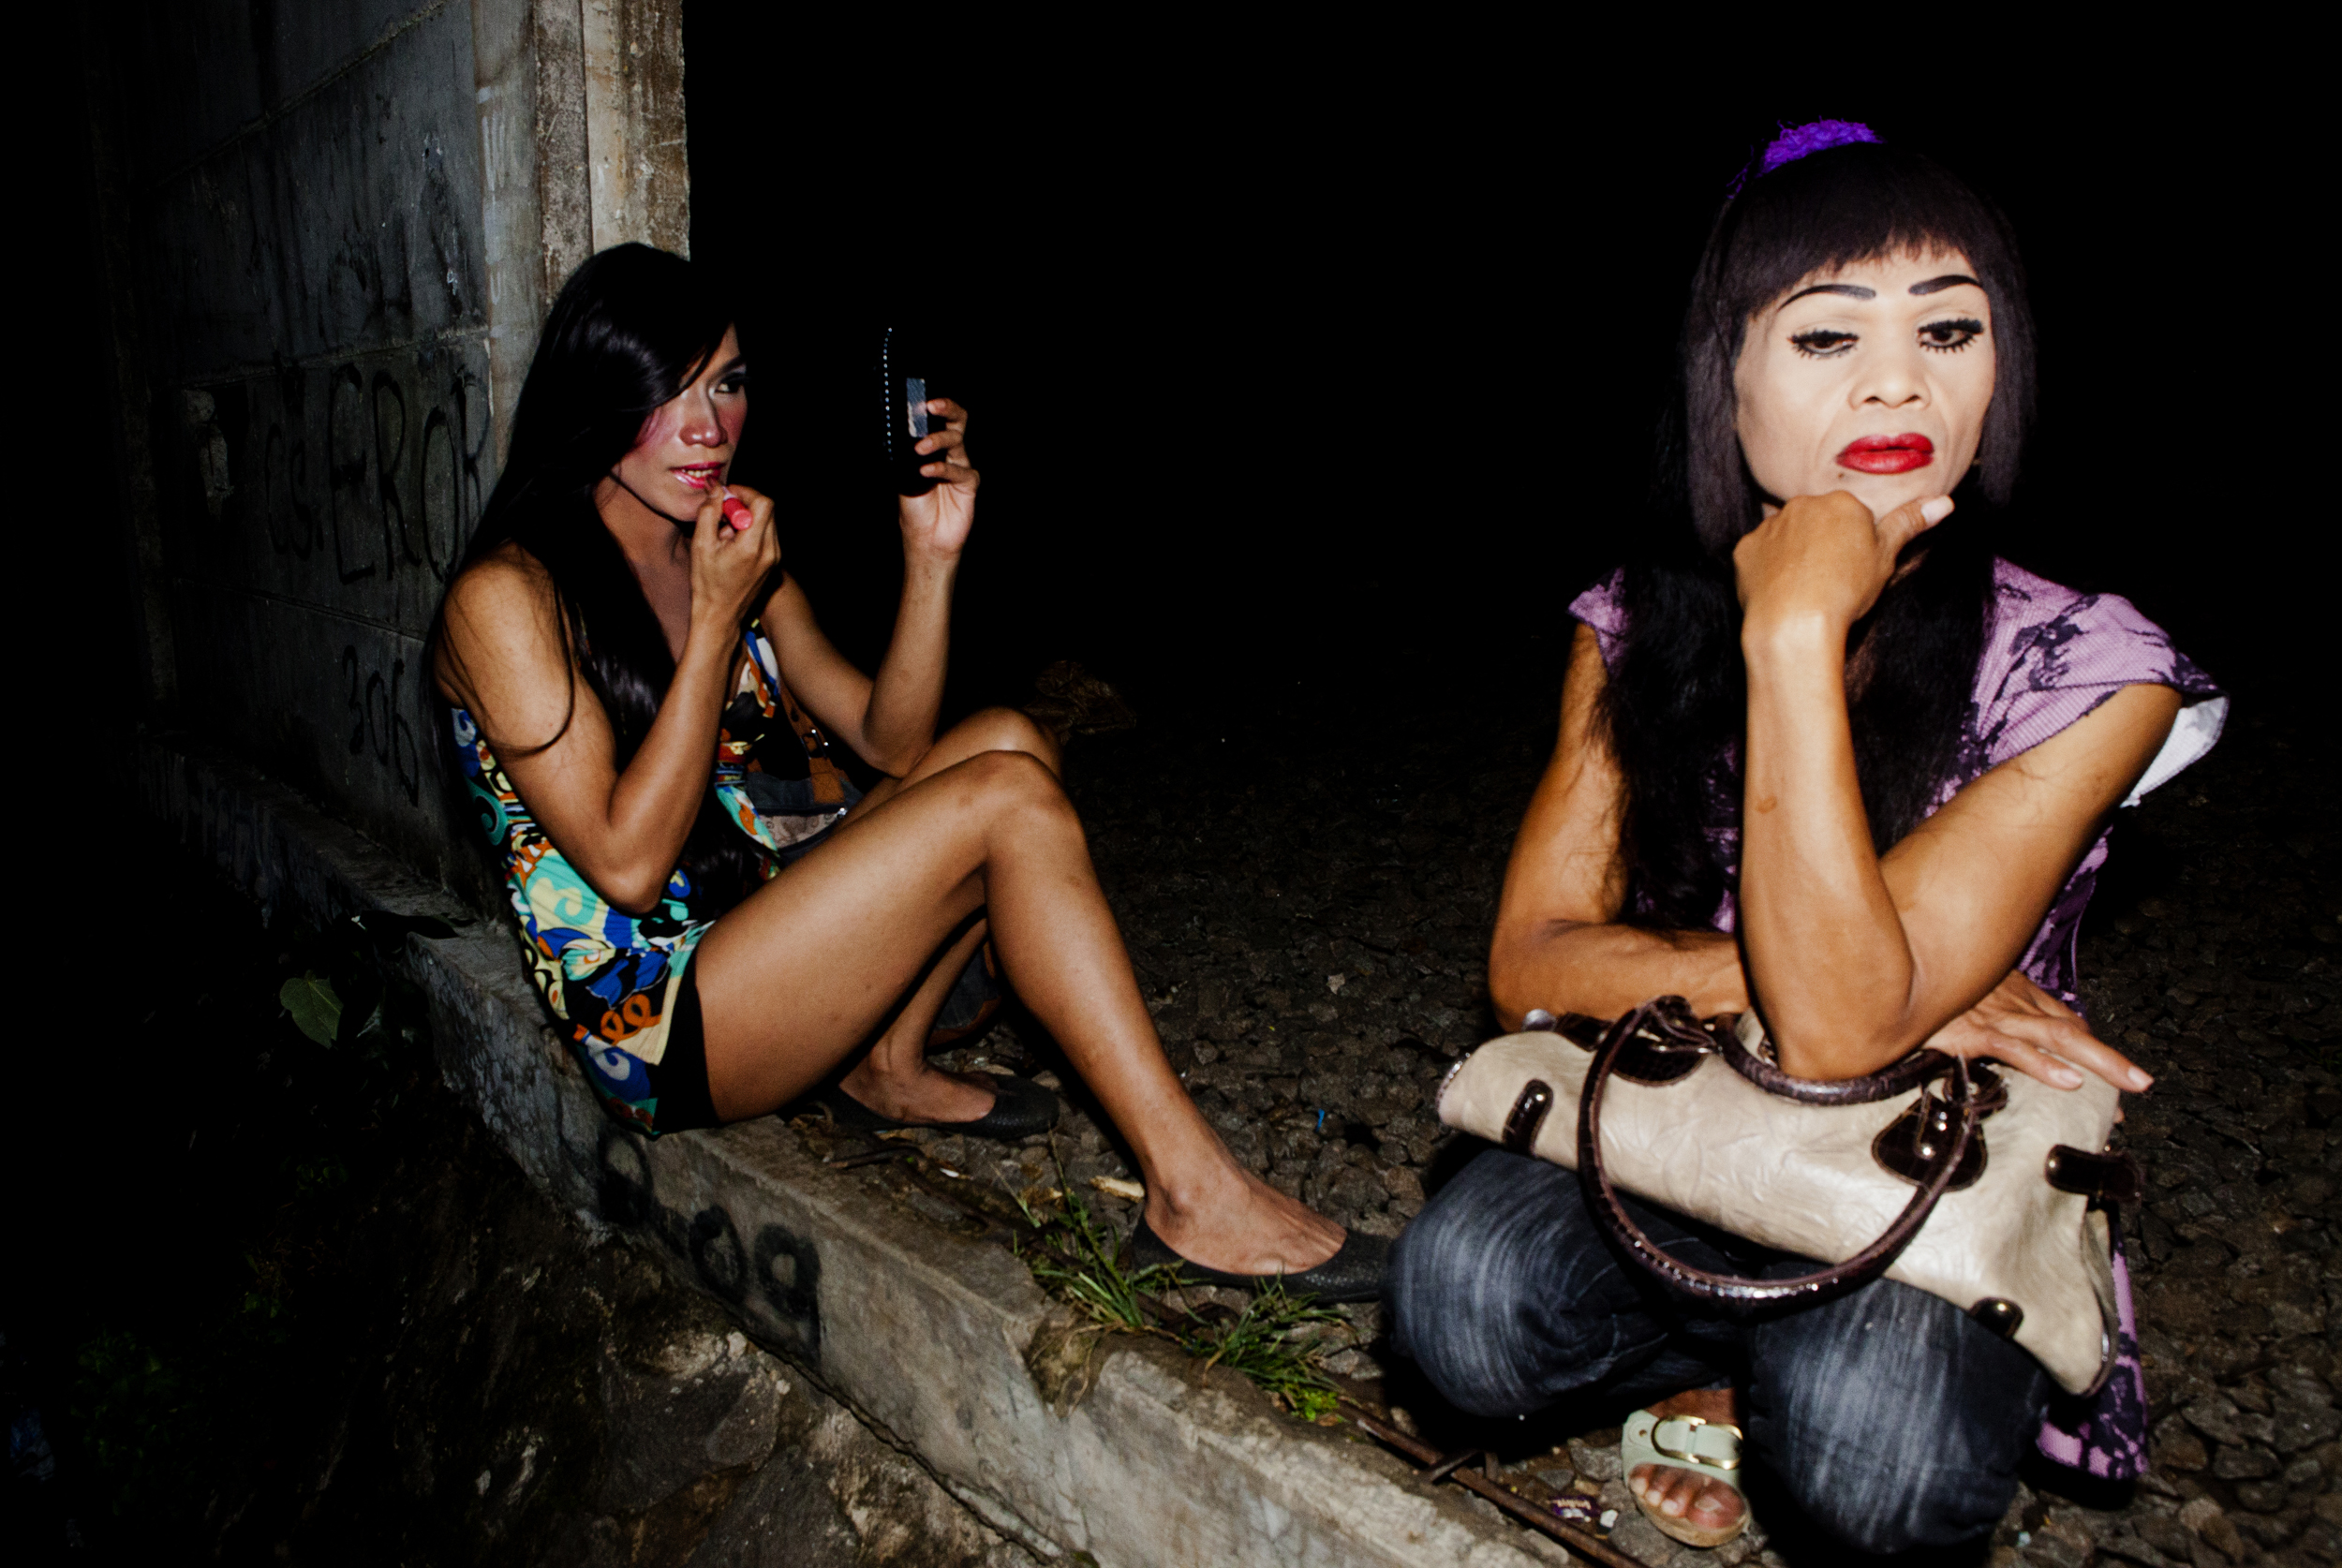 There are common threads in the lives of many warias. Sex work is one, mainly because there aren't many job opportunities for warias who live openly. They are seen as sex objects by men, or as a spectacle at nightclubs. They are often the victims of sexual violence and homicide.   Caption: Miska, right, and a friend sit on the edge of the train tracks waiting for clients. Miska said she is physically attacked and raped while working at least two times a year, if not more.